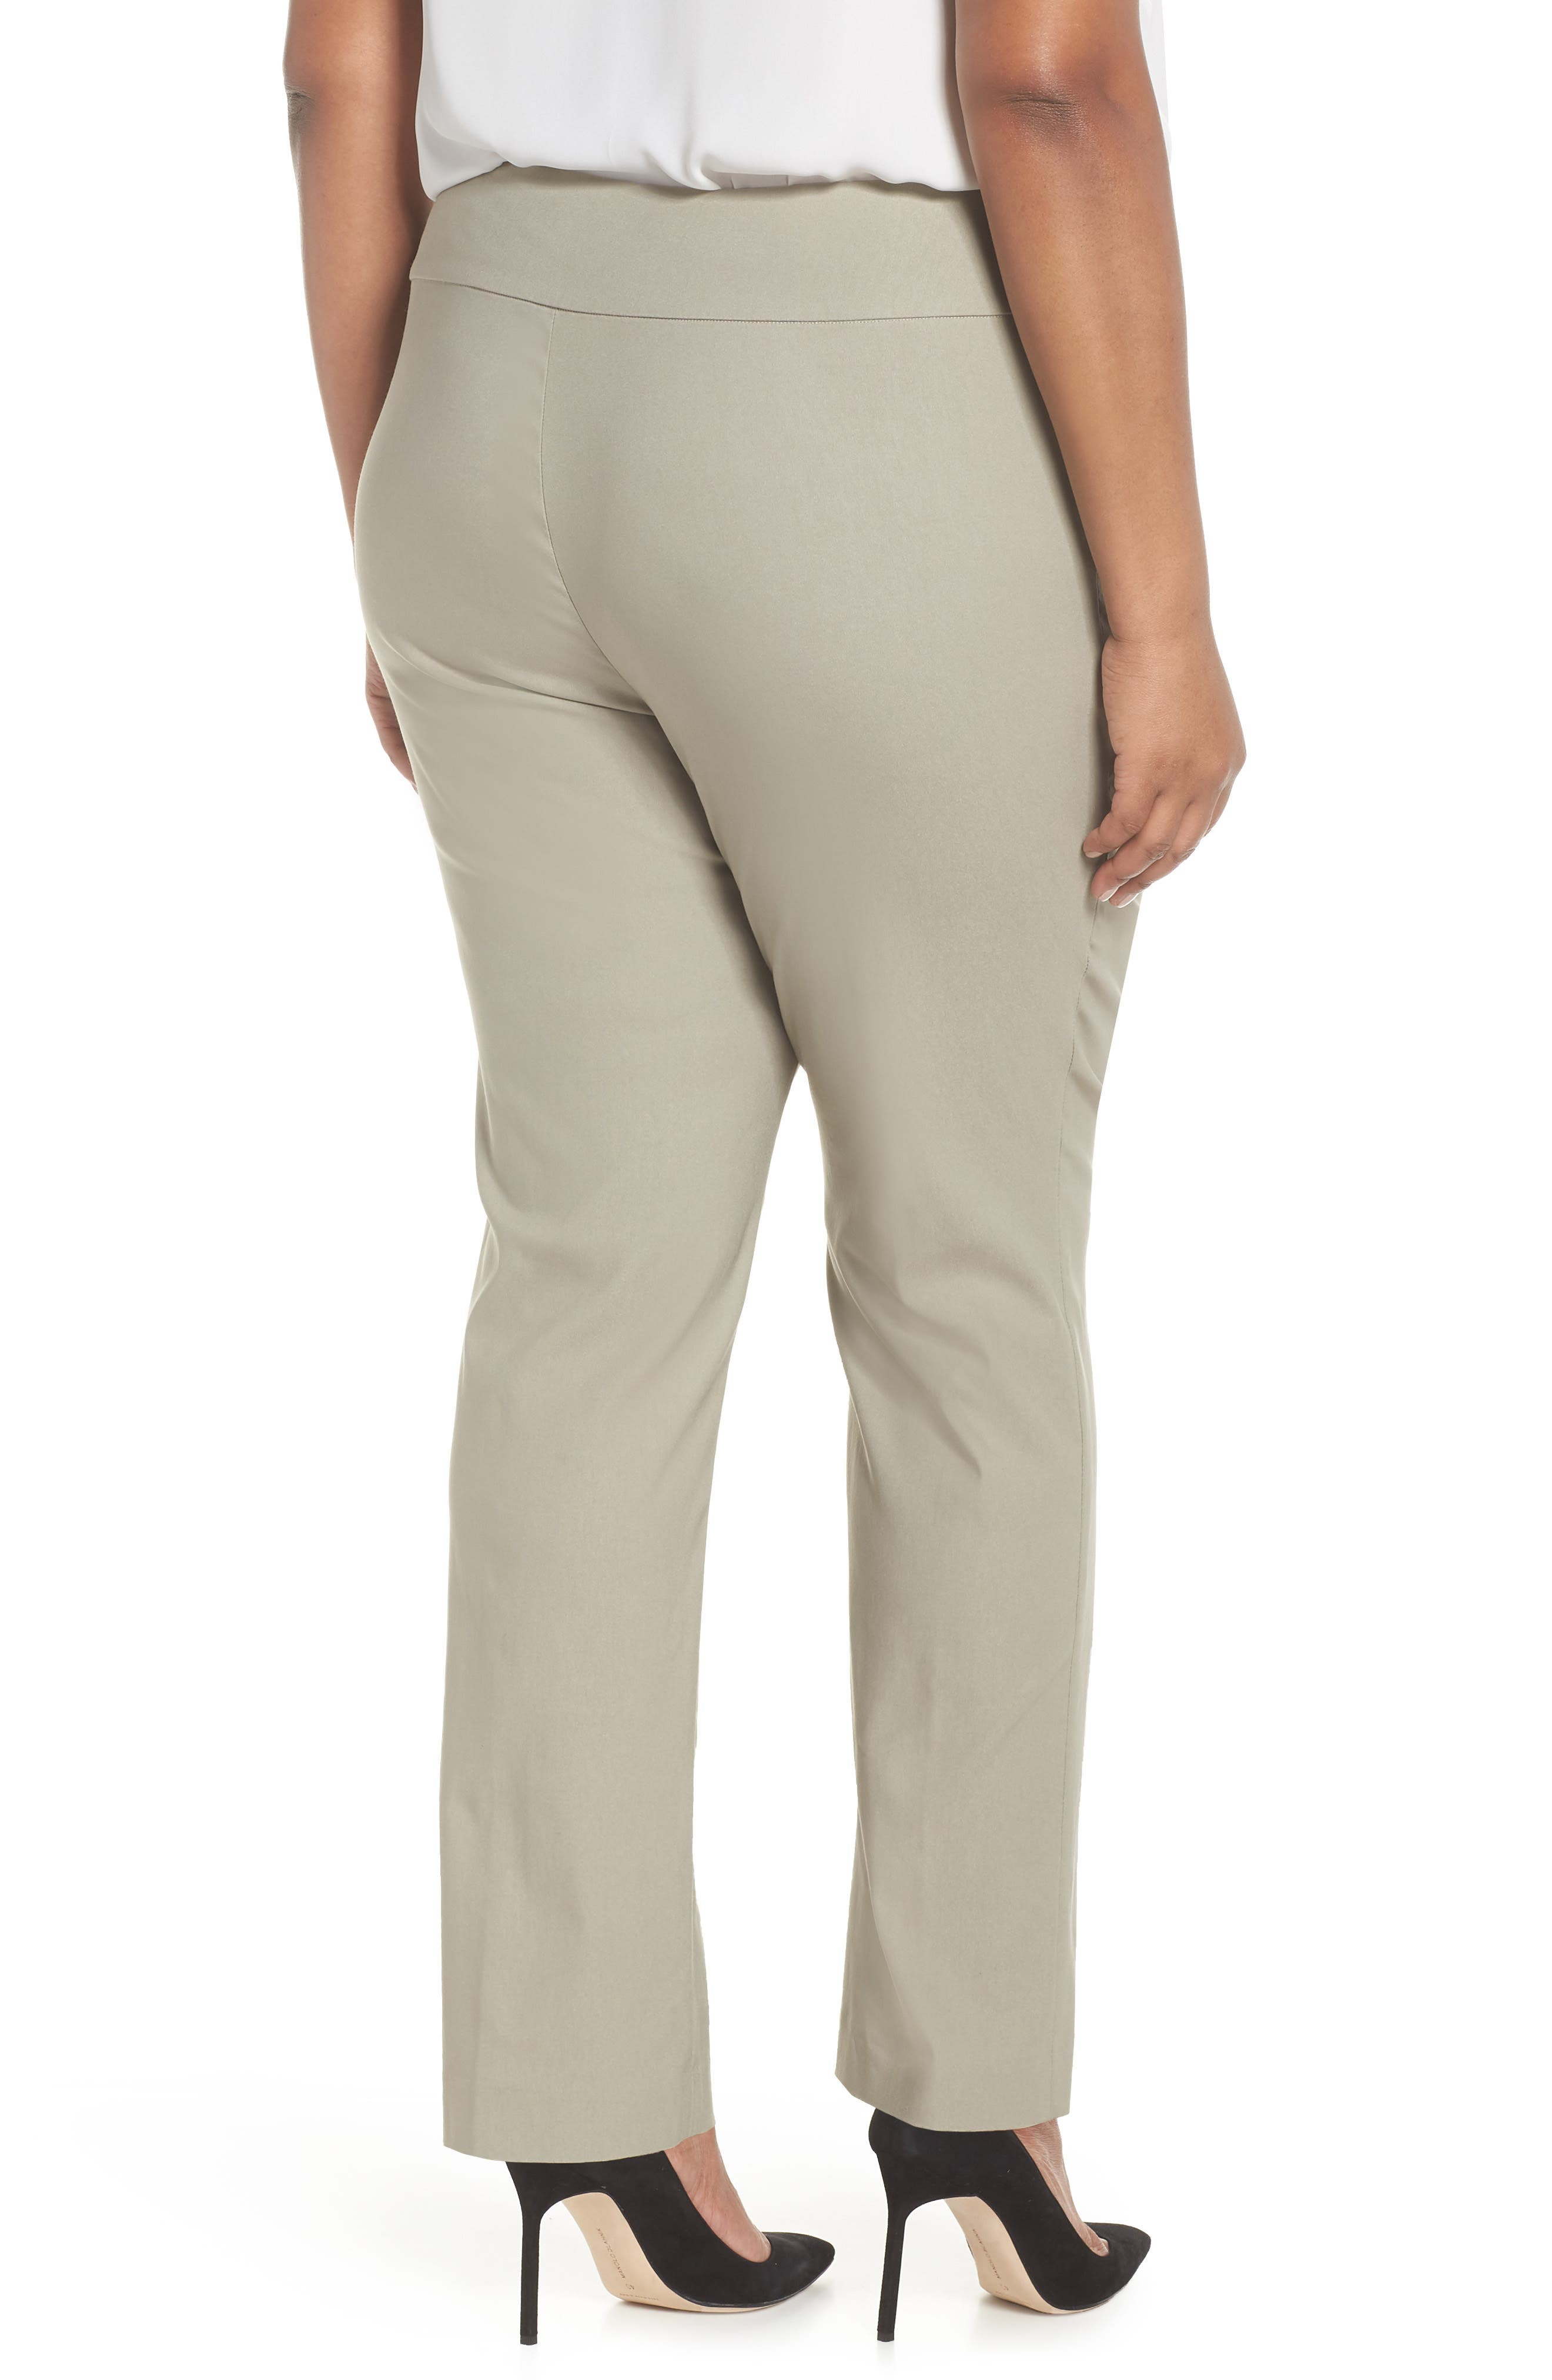 Wonderstretch High Rise Pants,                             Alternate thumbnail 2, color,                             251